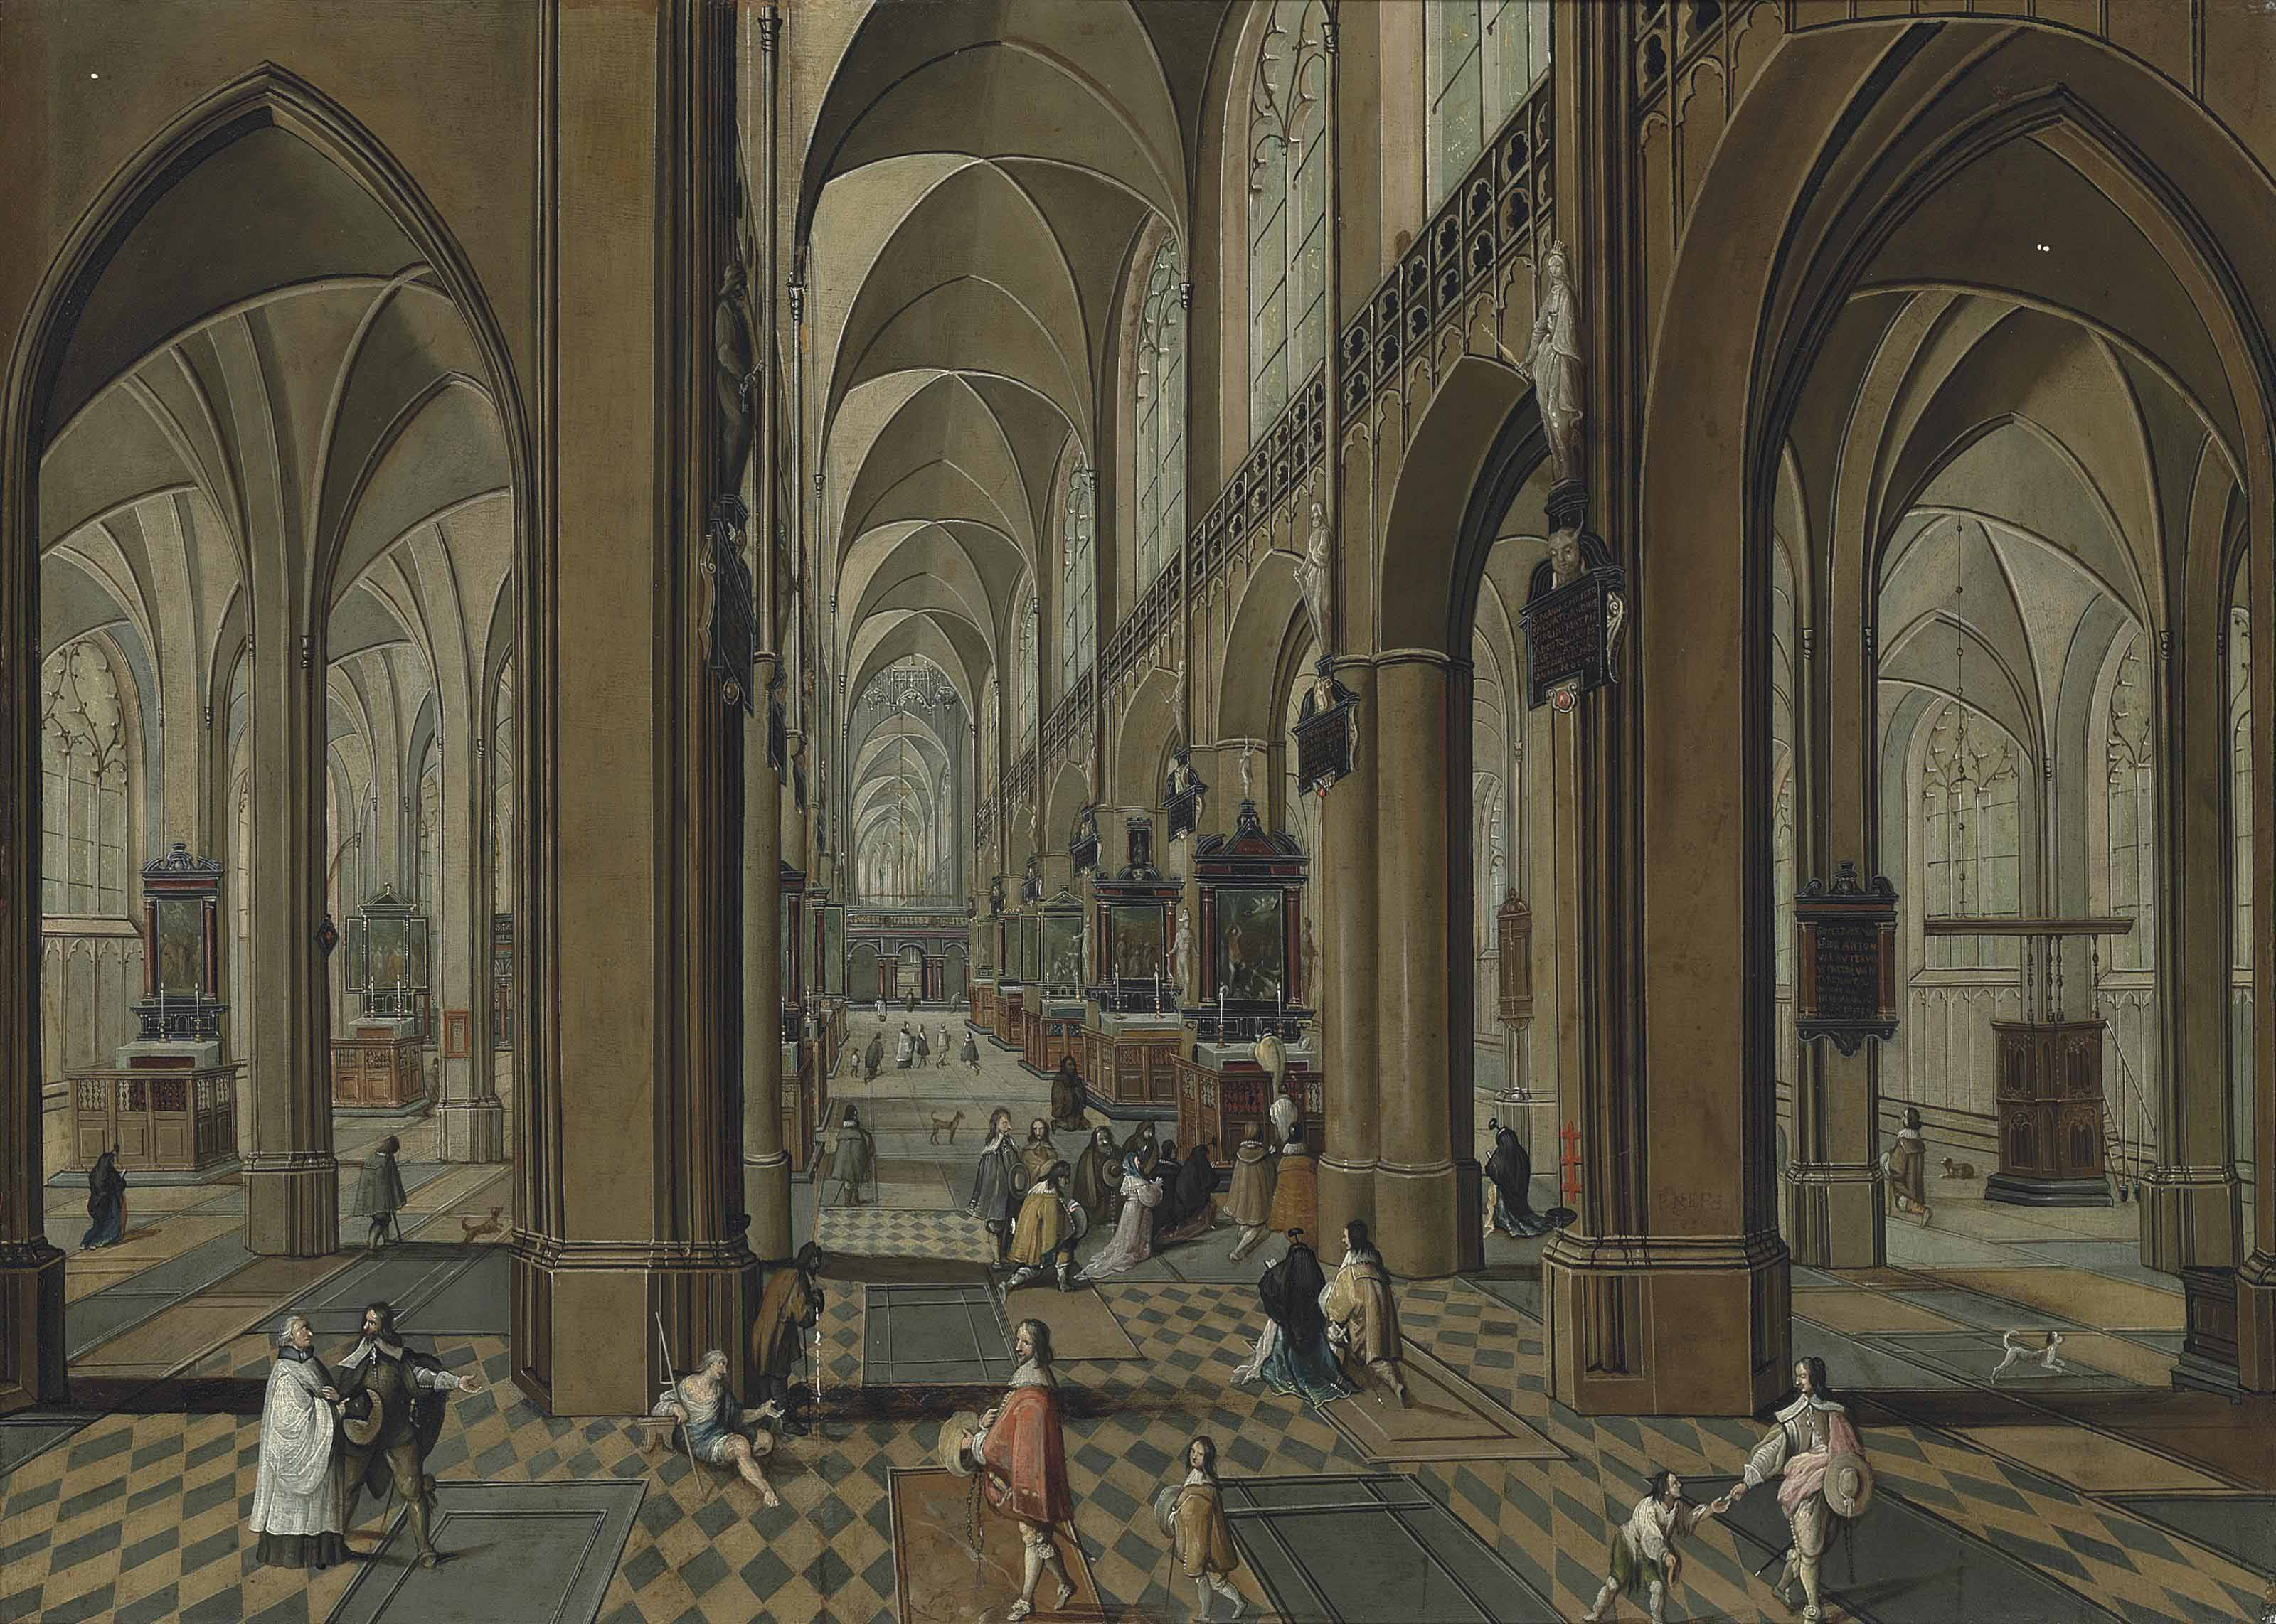 The interior of the Cathedral of Our Lady, Antwerp, with mass being celebrated on one of the altars, and other elegant figures conversing